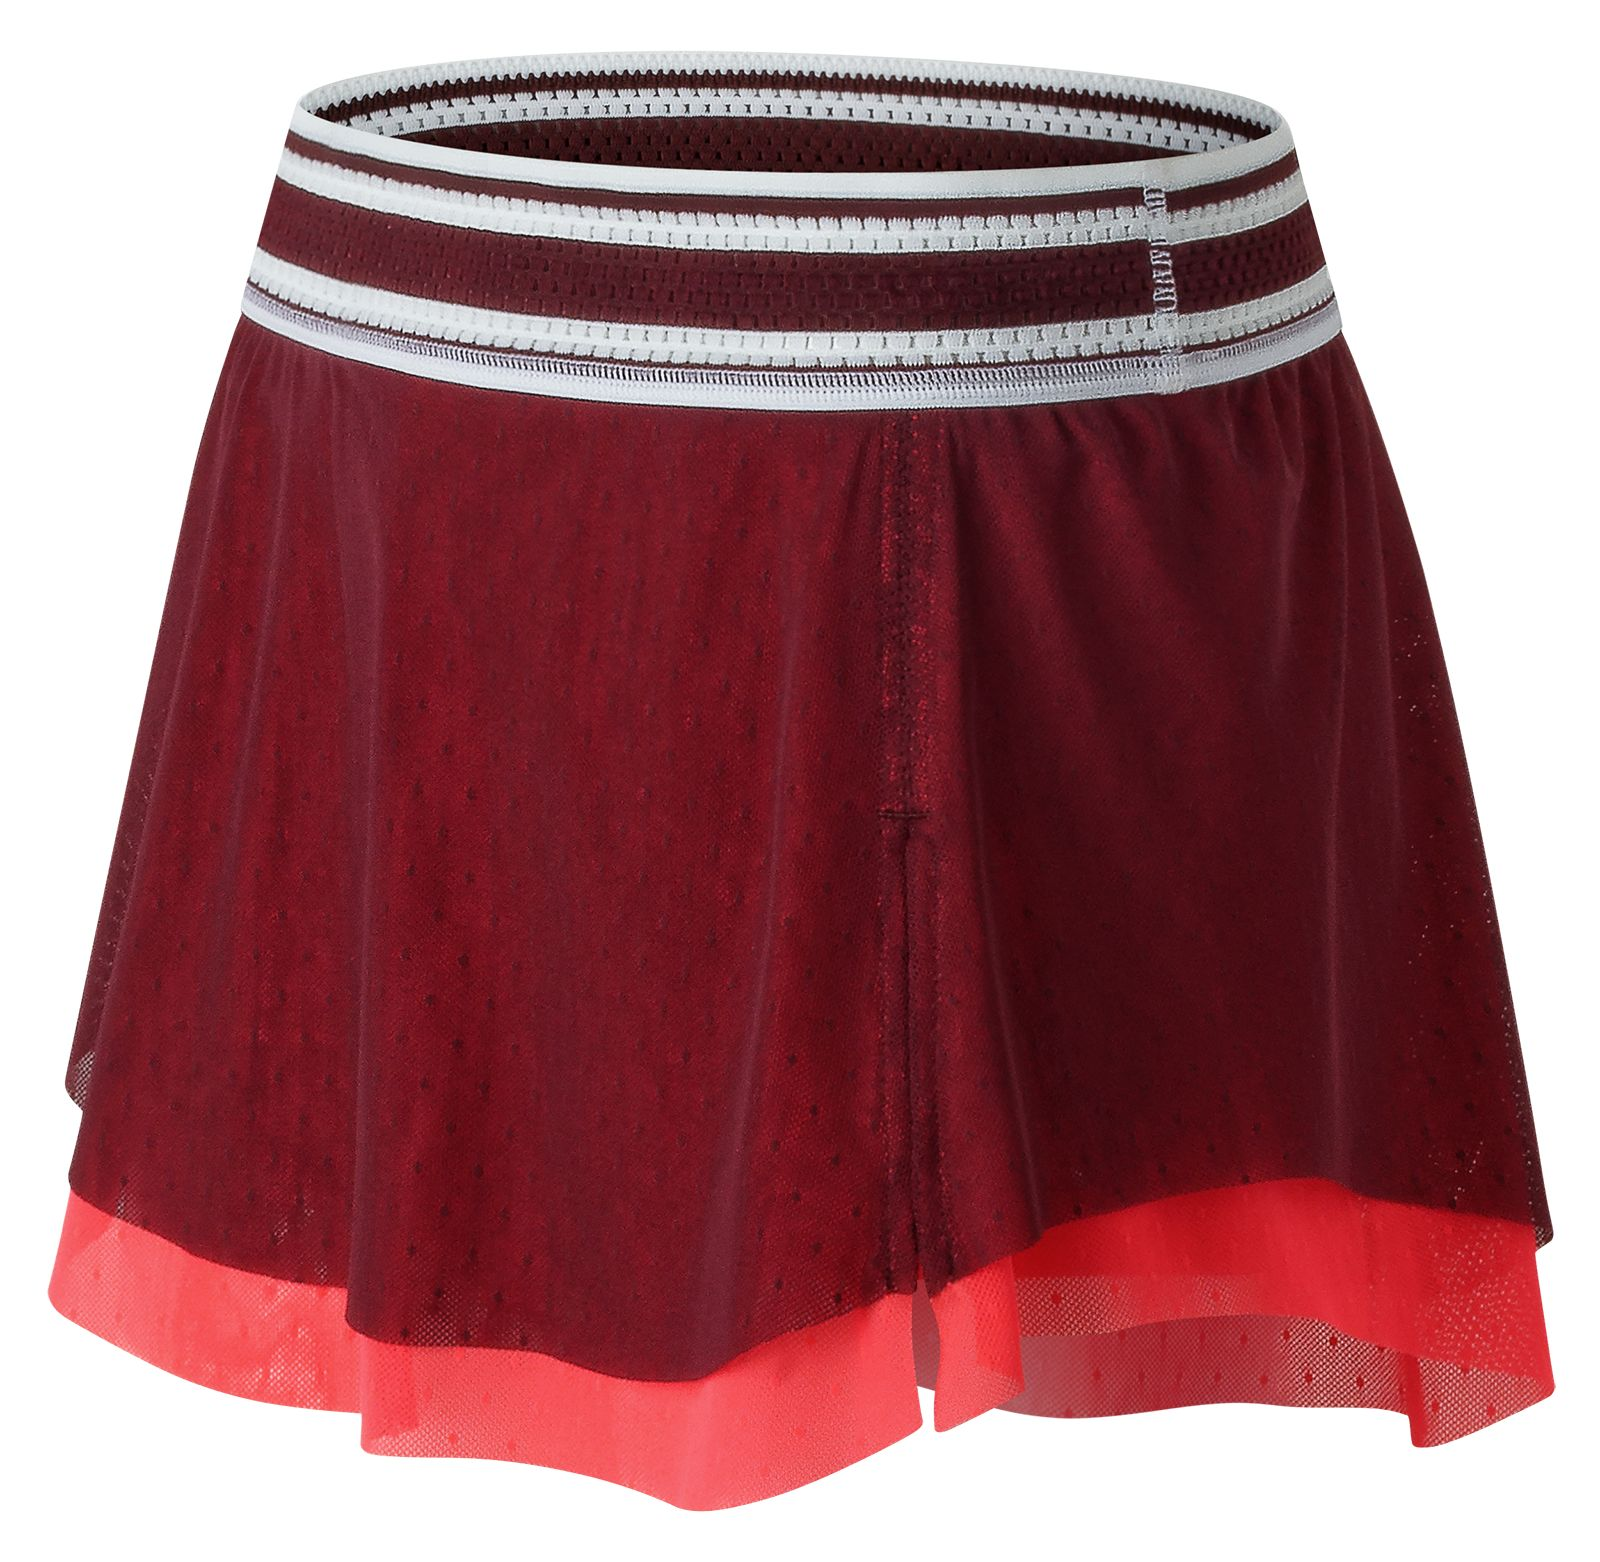 Tournament Skort de Cabernet